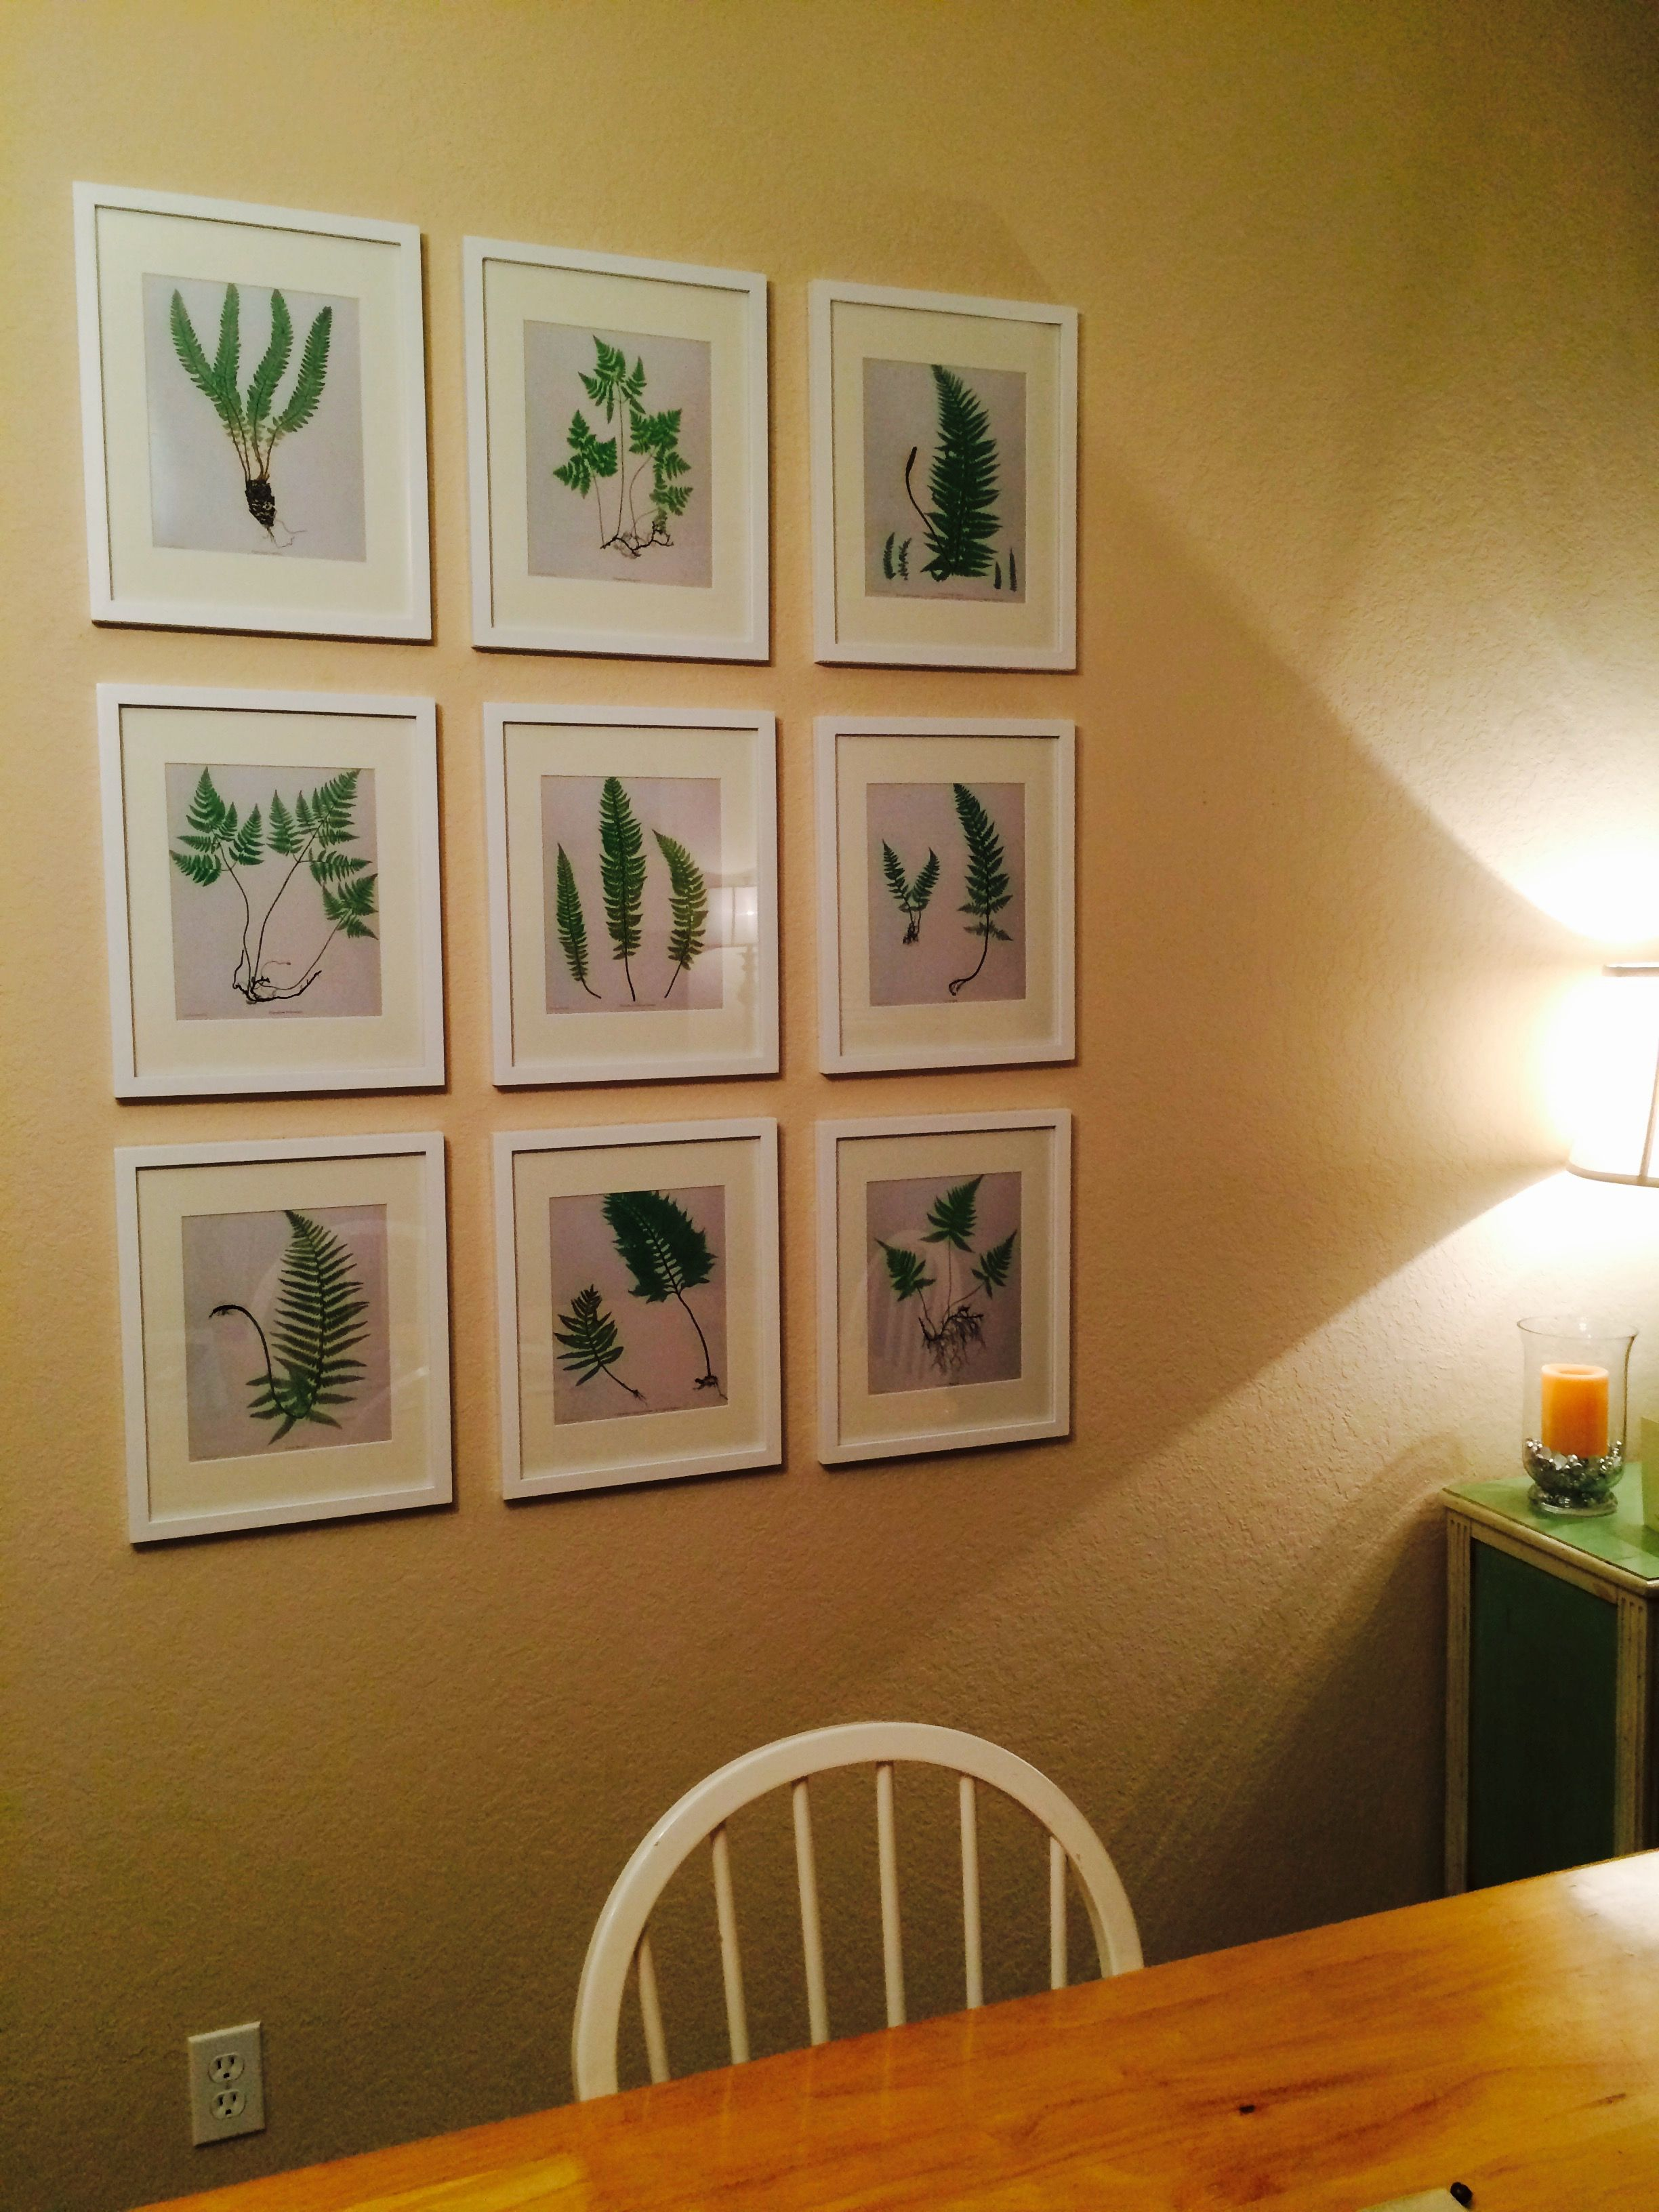 My Gallery Wall 1 Free Botanical Print Download 2 Shutterfly